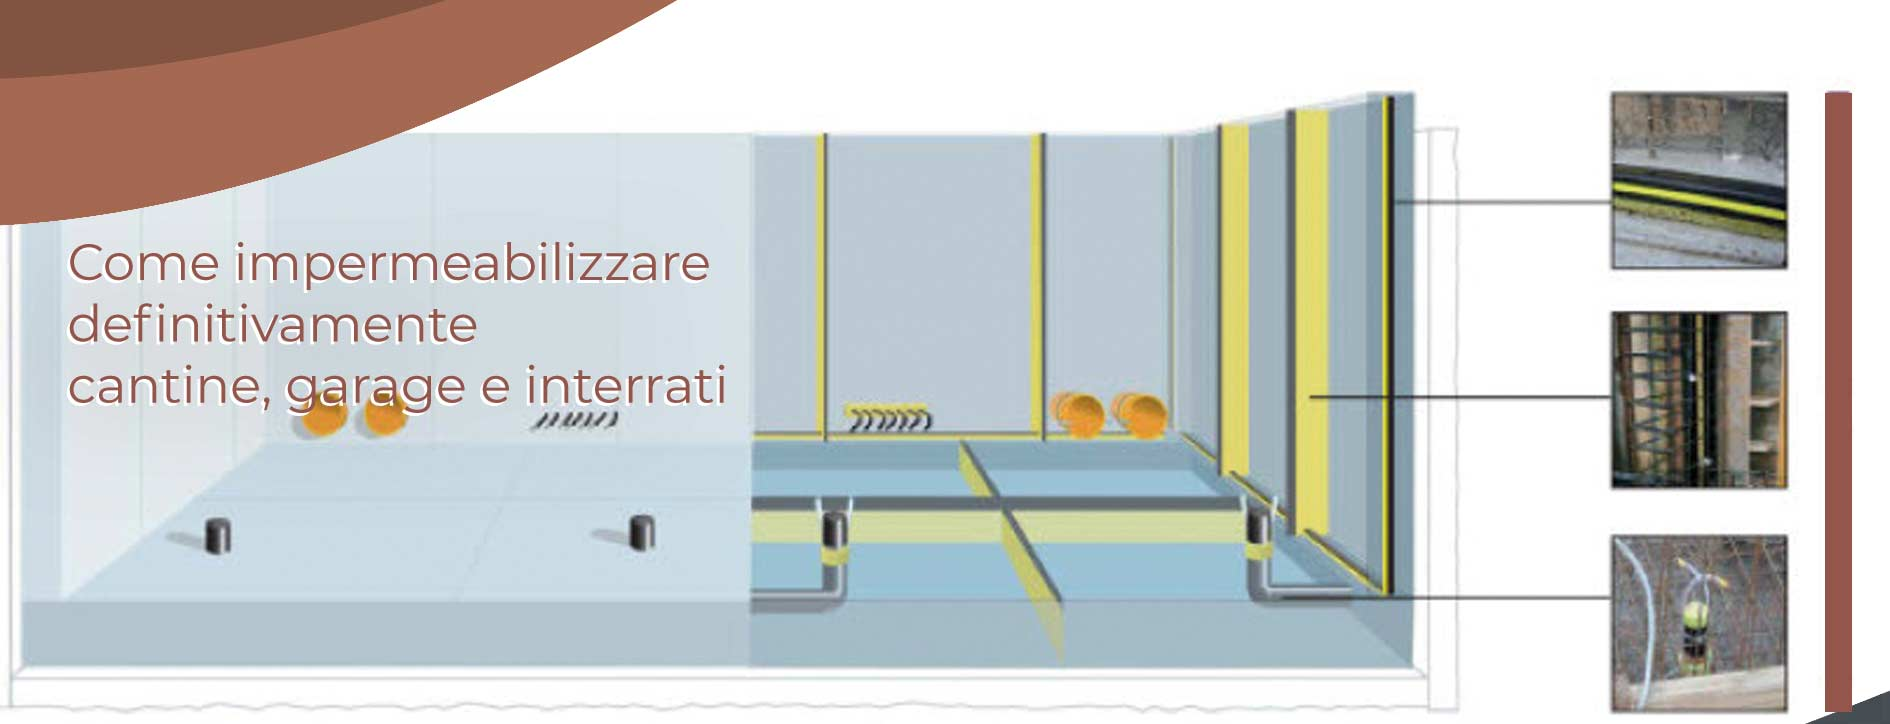 come impermeabilizzare definitivamente cantine, garage e interrati